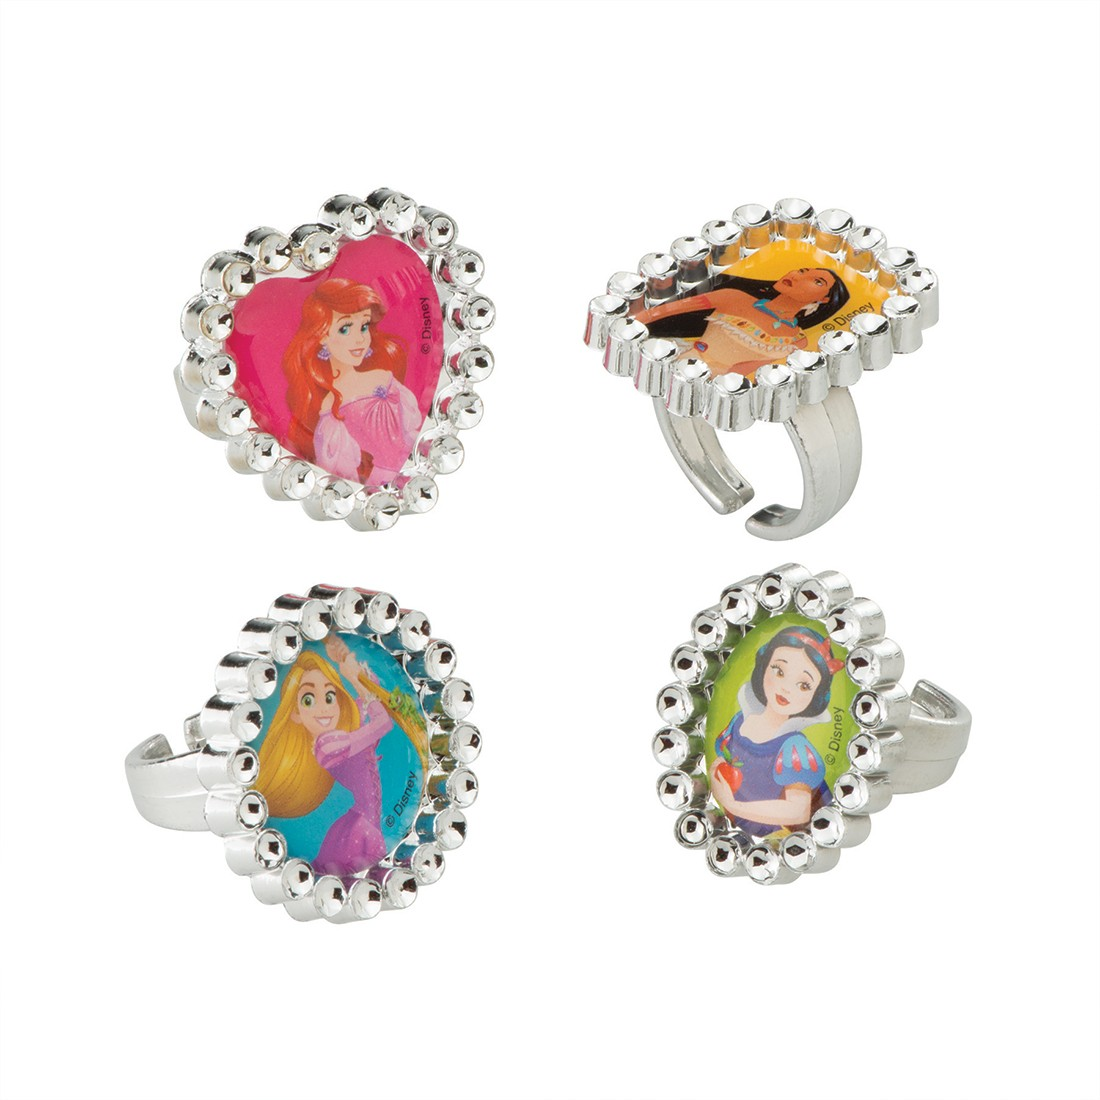 Disney Princess Jewel Rings [image]